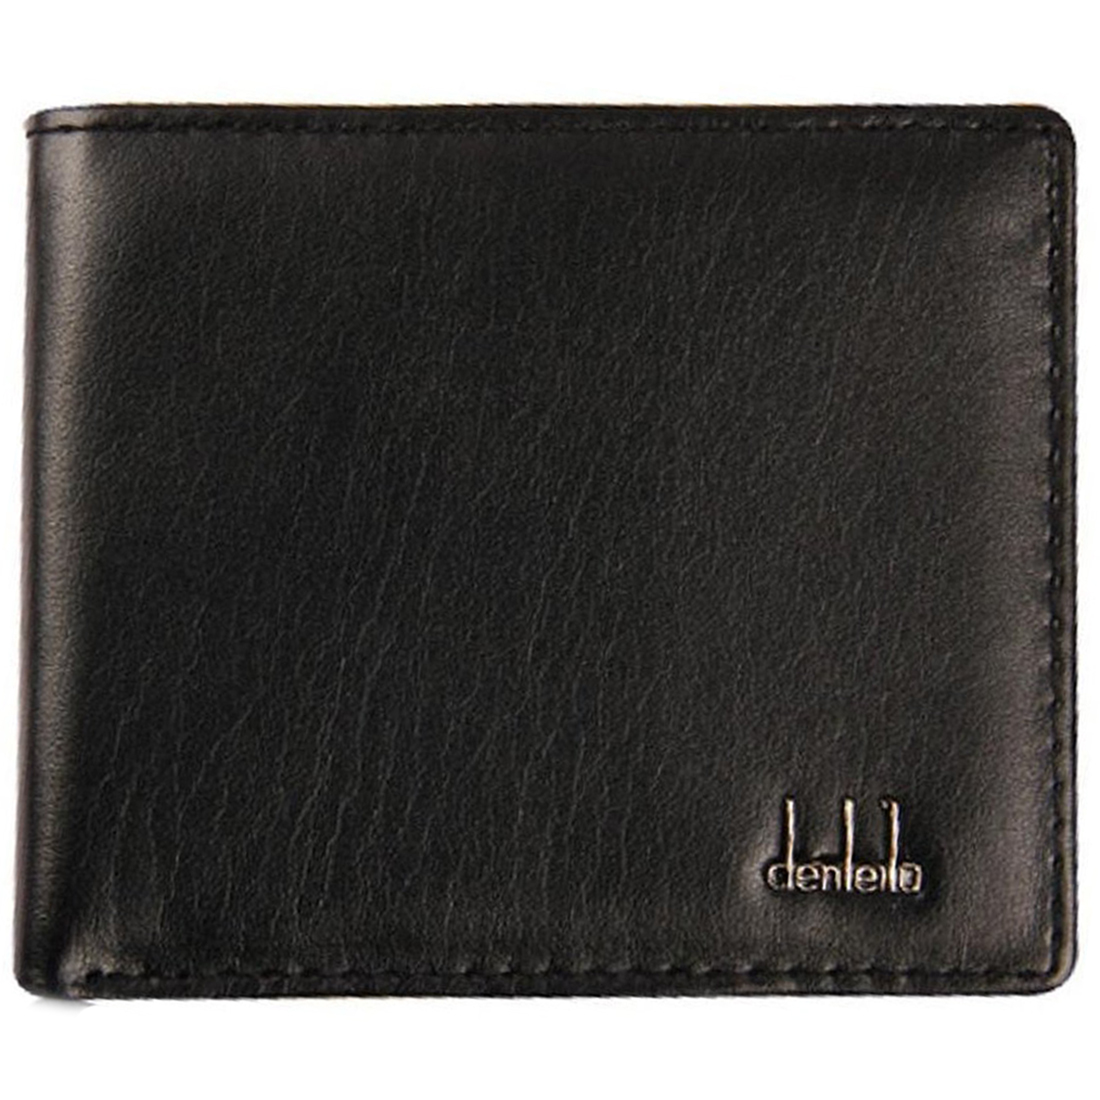 TEXU Men Bifold Business Leather Wallet ID Credit Card Holder Purse Pockets hot sale jinbaolai bifold wallet men leather credit id card holder purse mini wallet fashion brand quality purse wallet for men